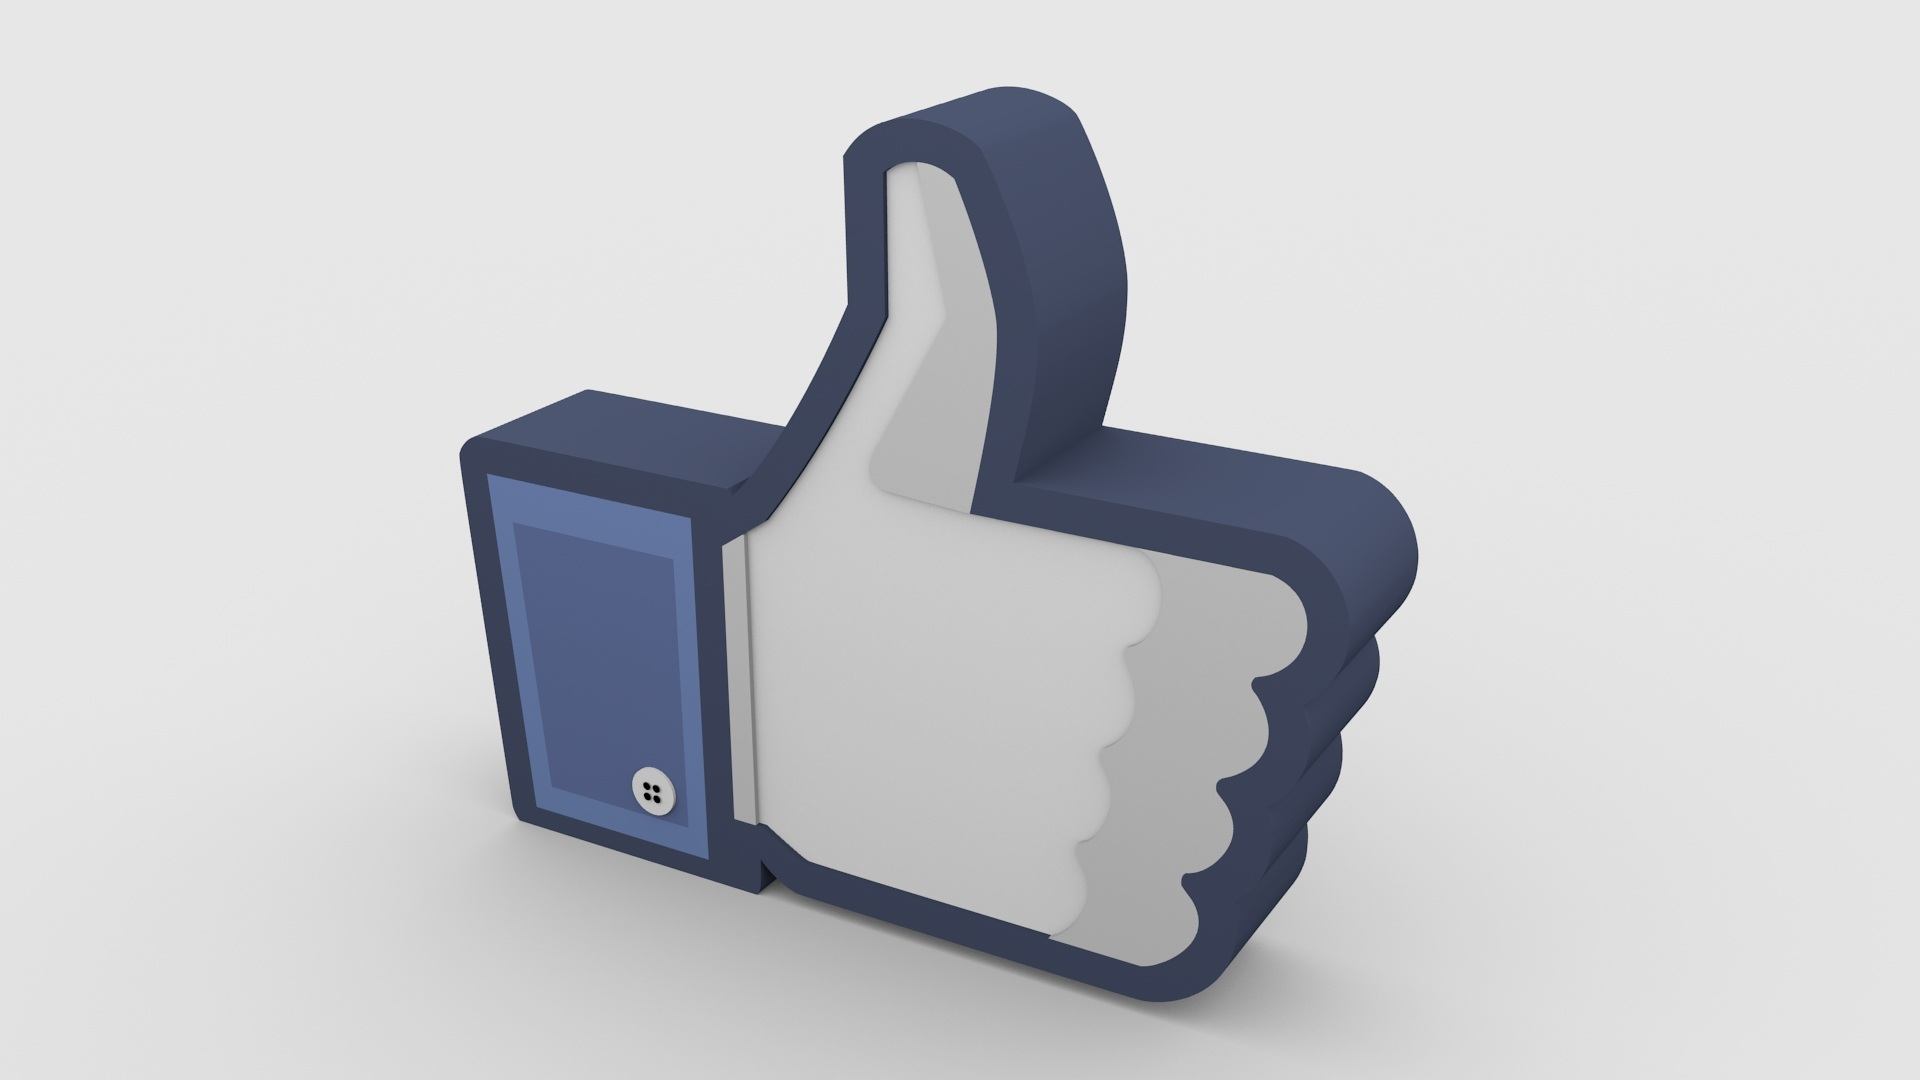 5 Reasons Your Facebook Business Page Isn't Being Liked